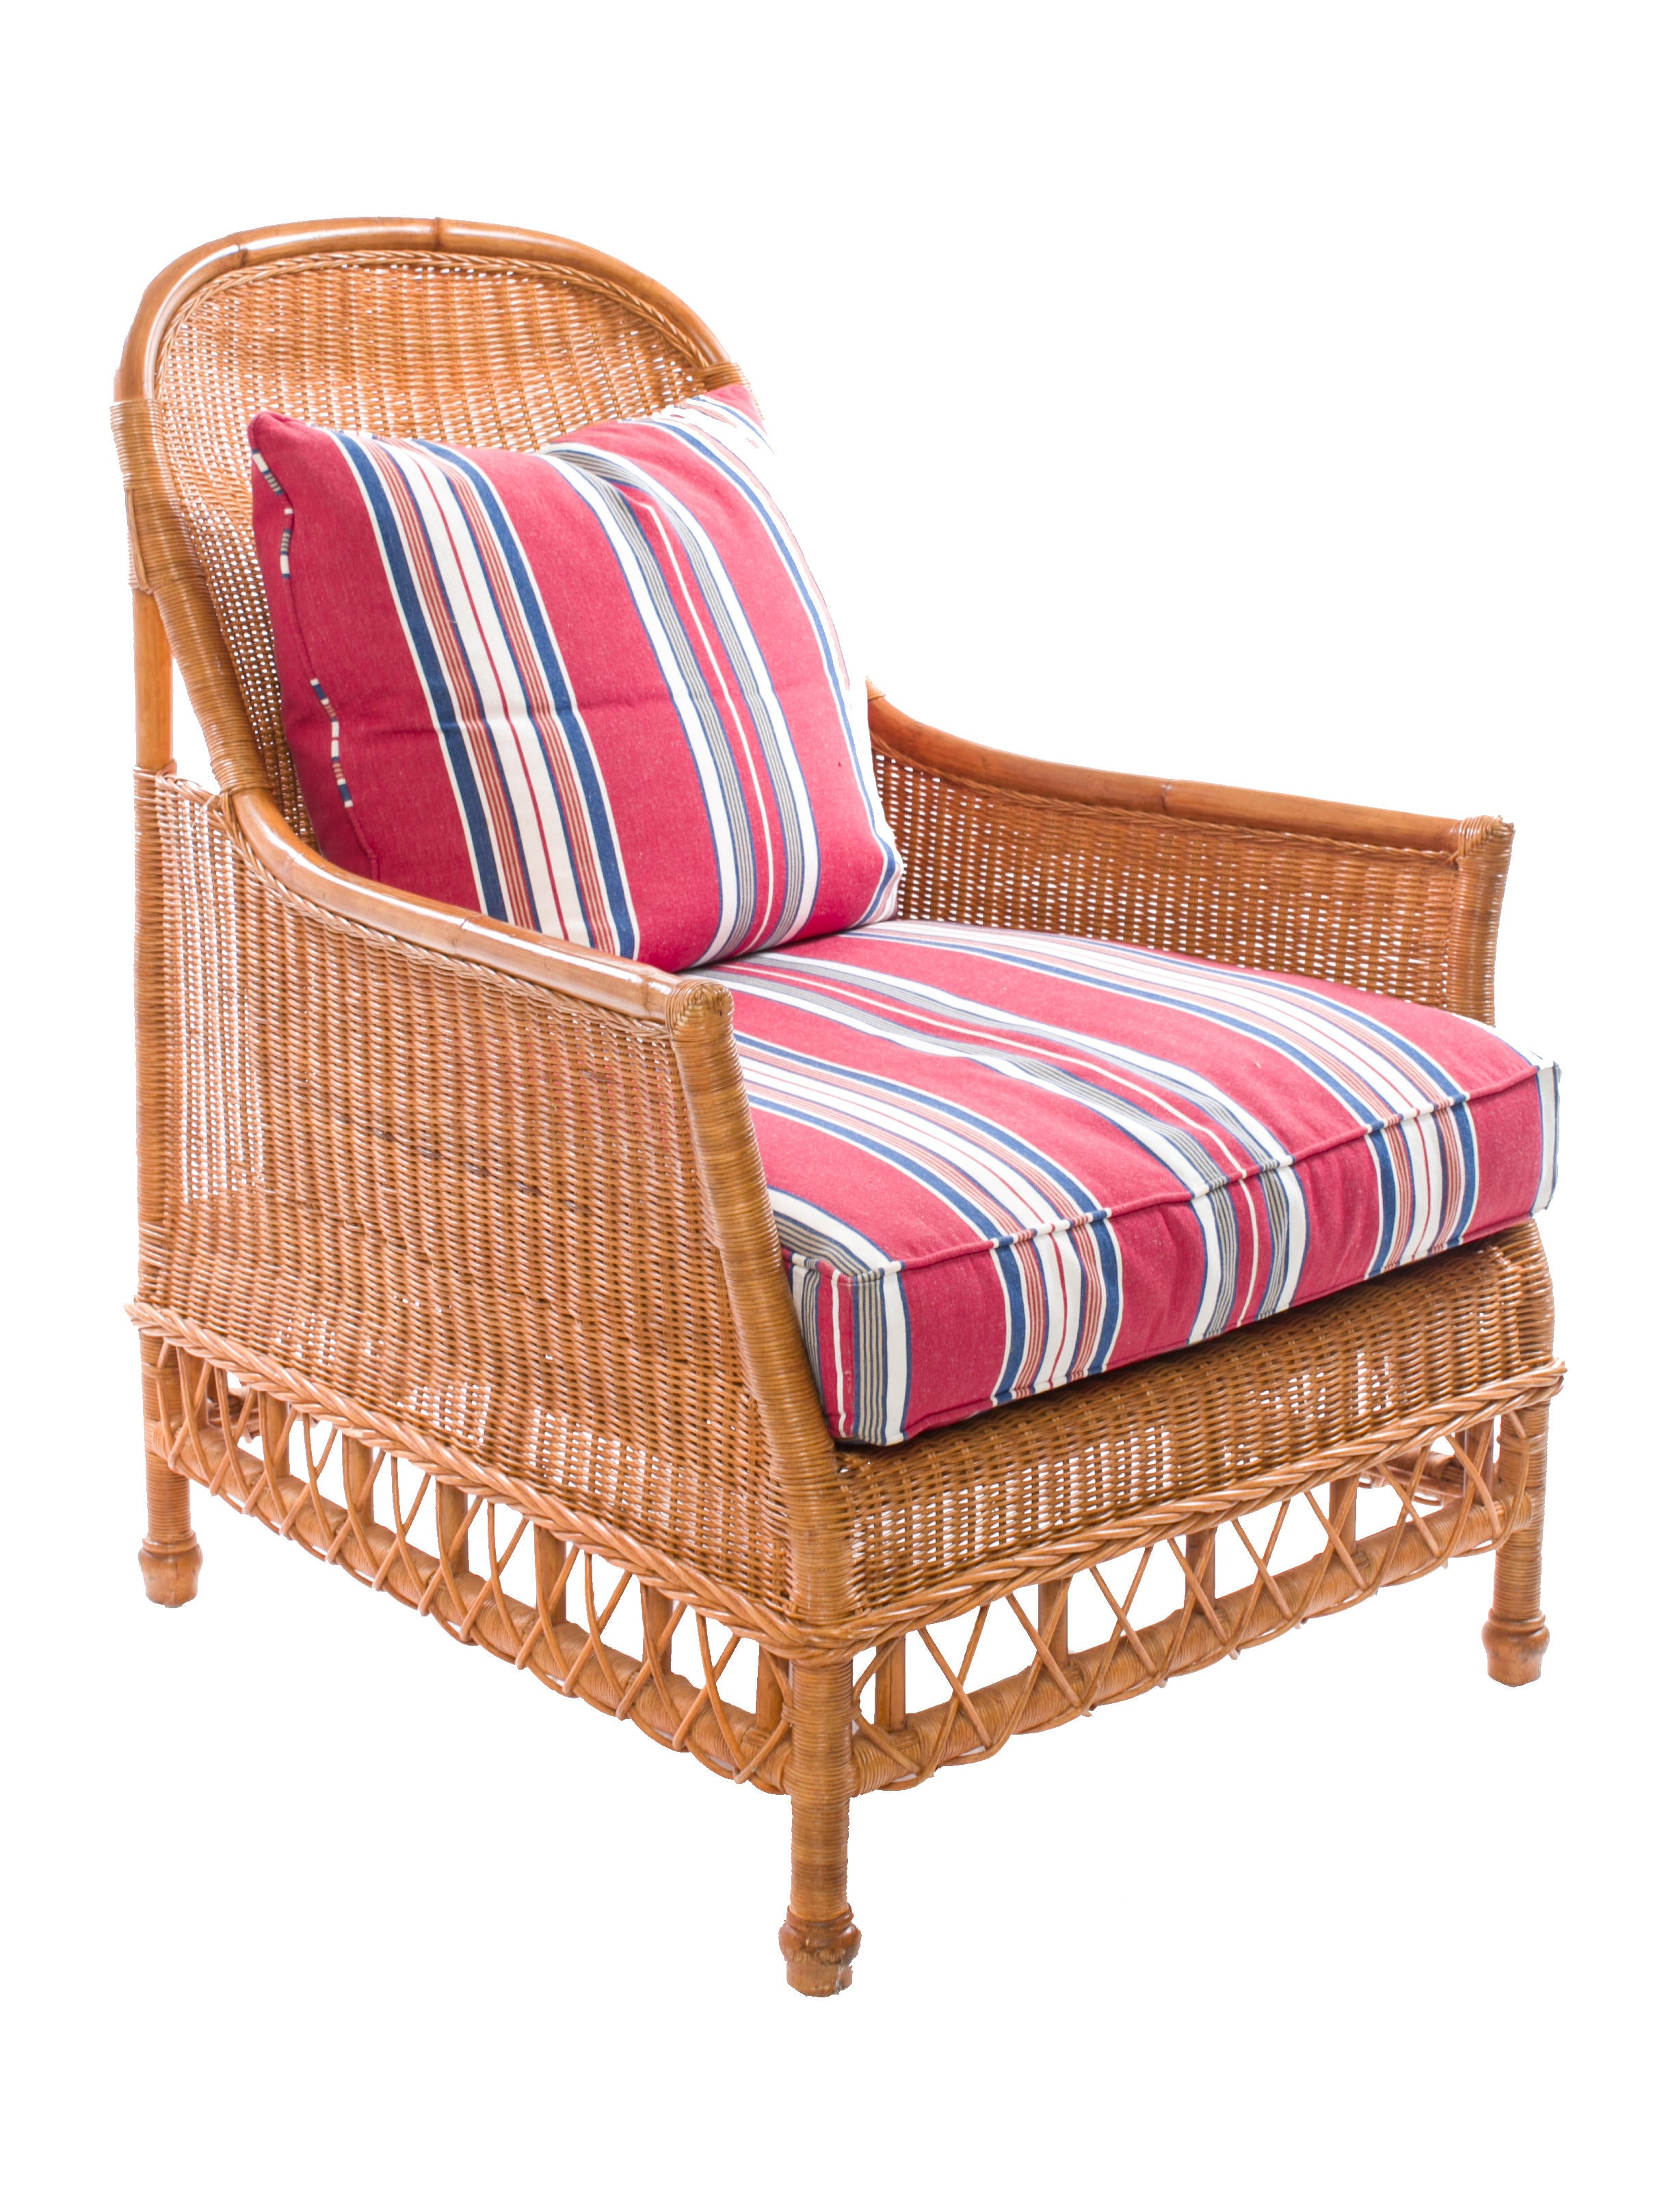 Ralph Lauren American Villa Wicker Chair Furniture Wyg20258 The Realreal